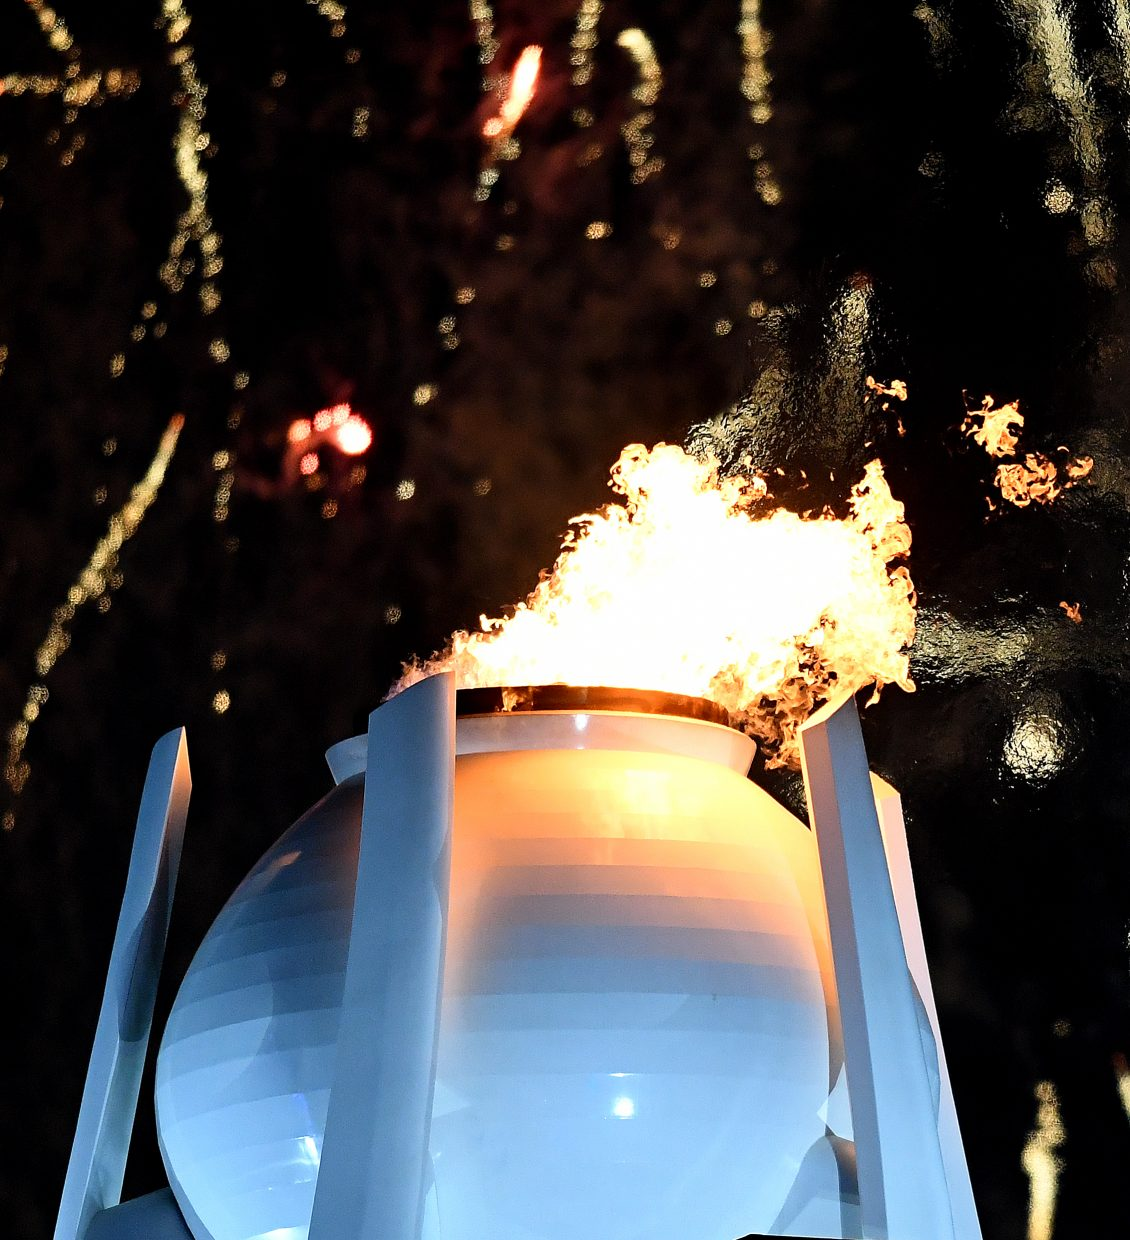 The Olympic flame at the 2014 Olympics was a large independent structure in the middle of a massive, open plaza. It was easy to isolate for photos. The flame in Pyeongchang, on the other hand, was sticking out of the top of the Olympic stadium. The view of the entire structure was obscured from my Opening Ceremonies seat, so to trim out some of that clutter I had to crop just the top part to get a dramatic photo.